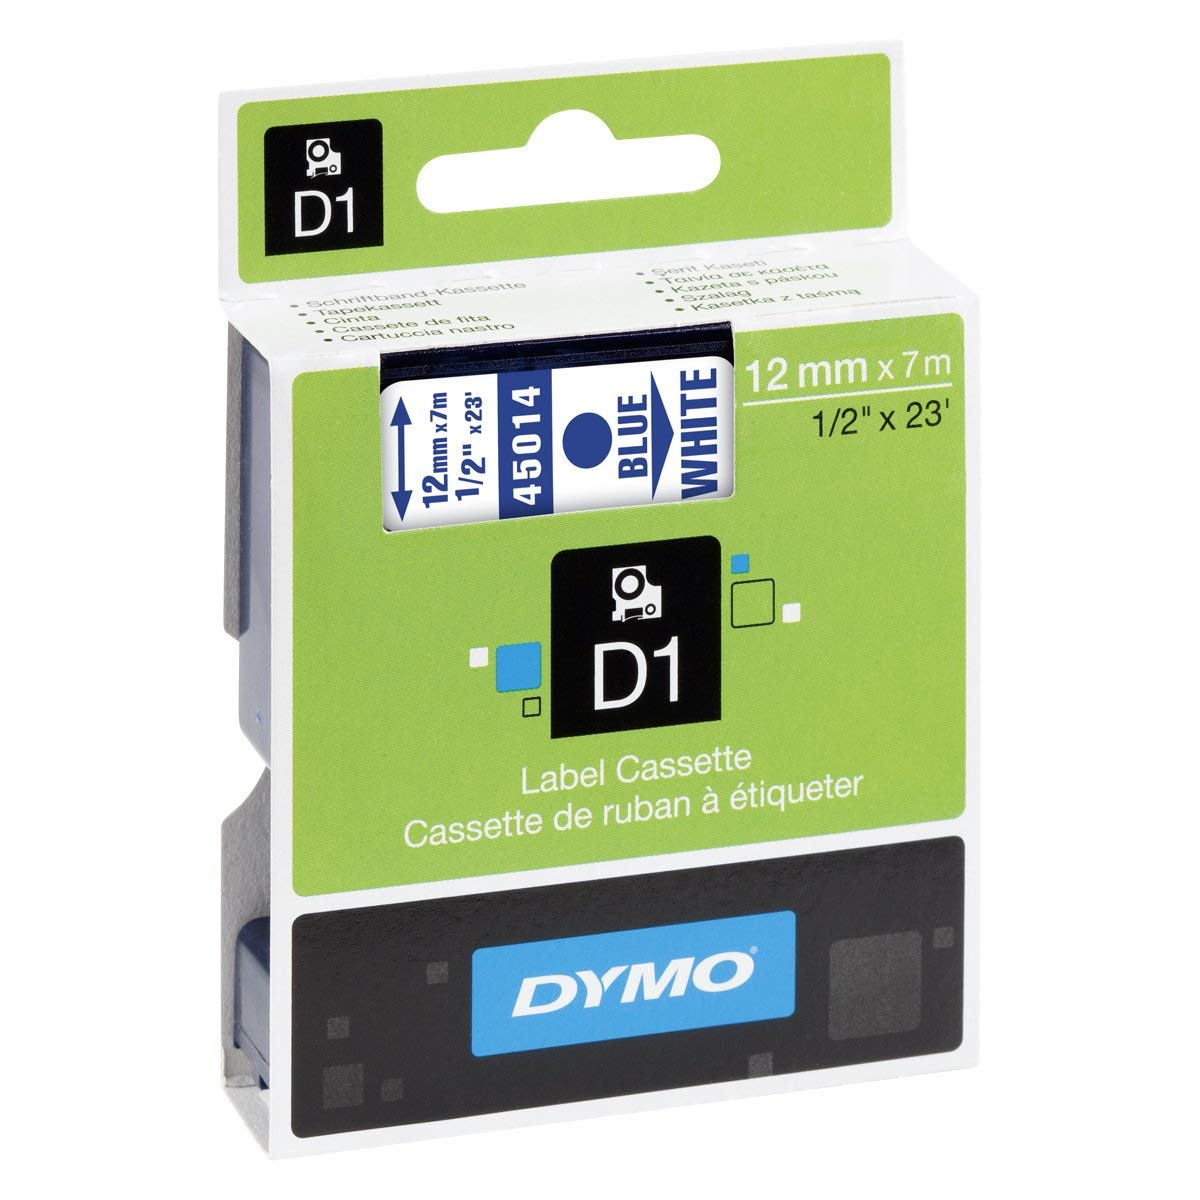 Dymo S0720540 (45014) D1 Standard Self-Adhesive Label Tape 12mm x 7m - Blue on White (pc)